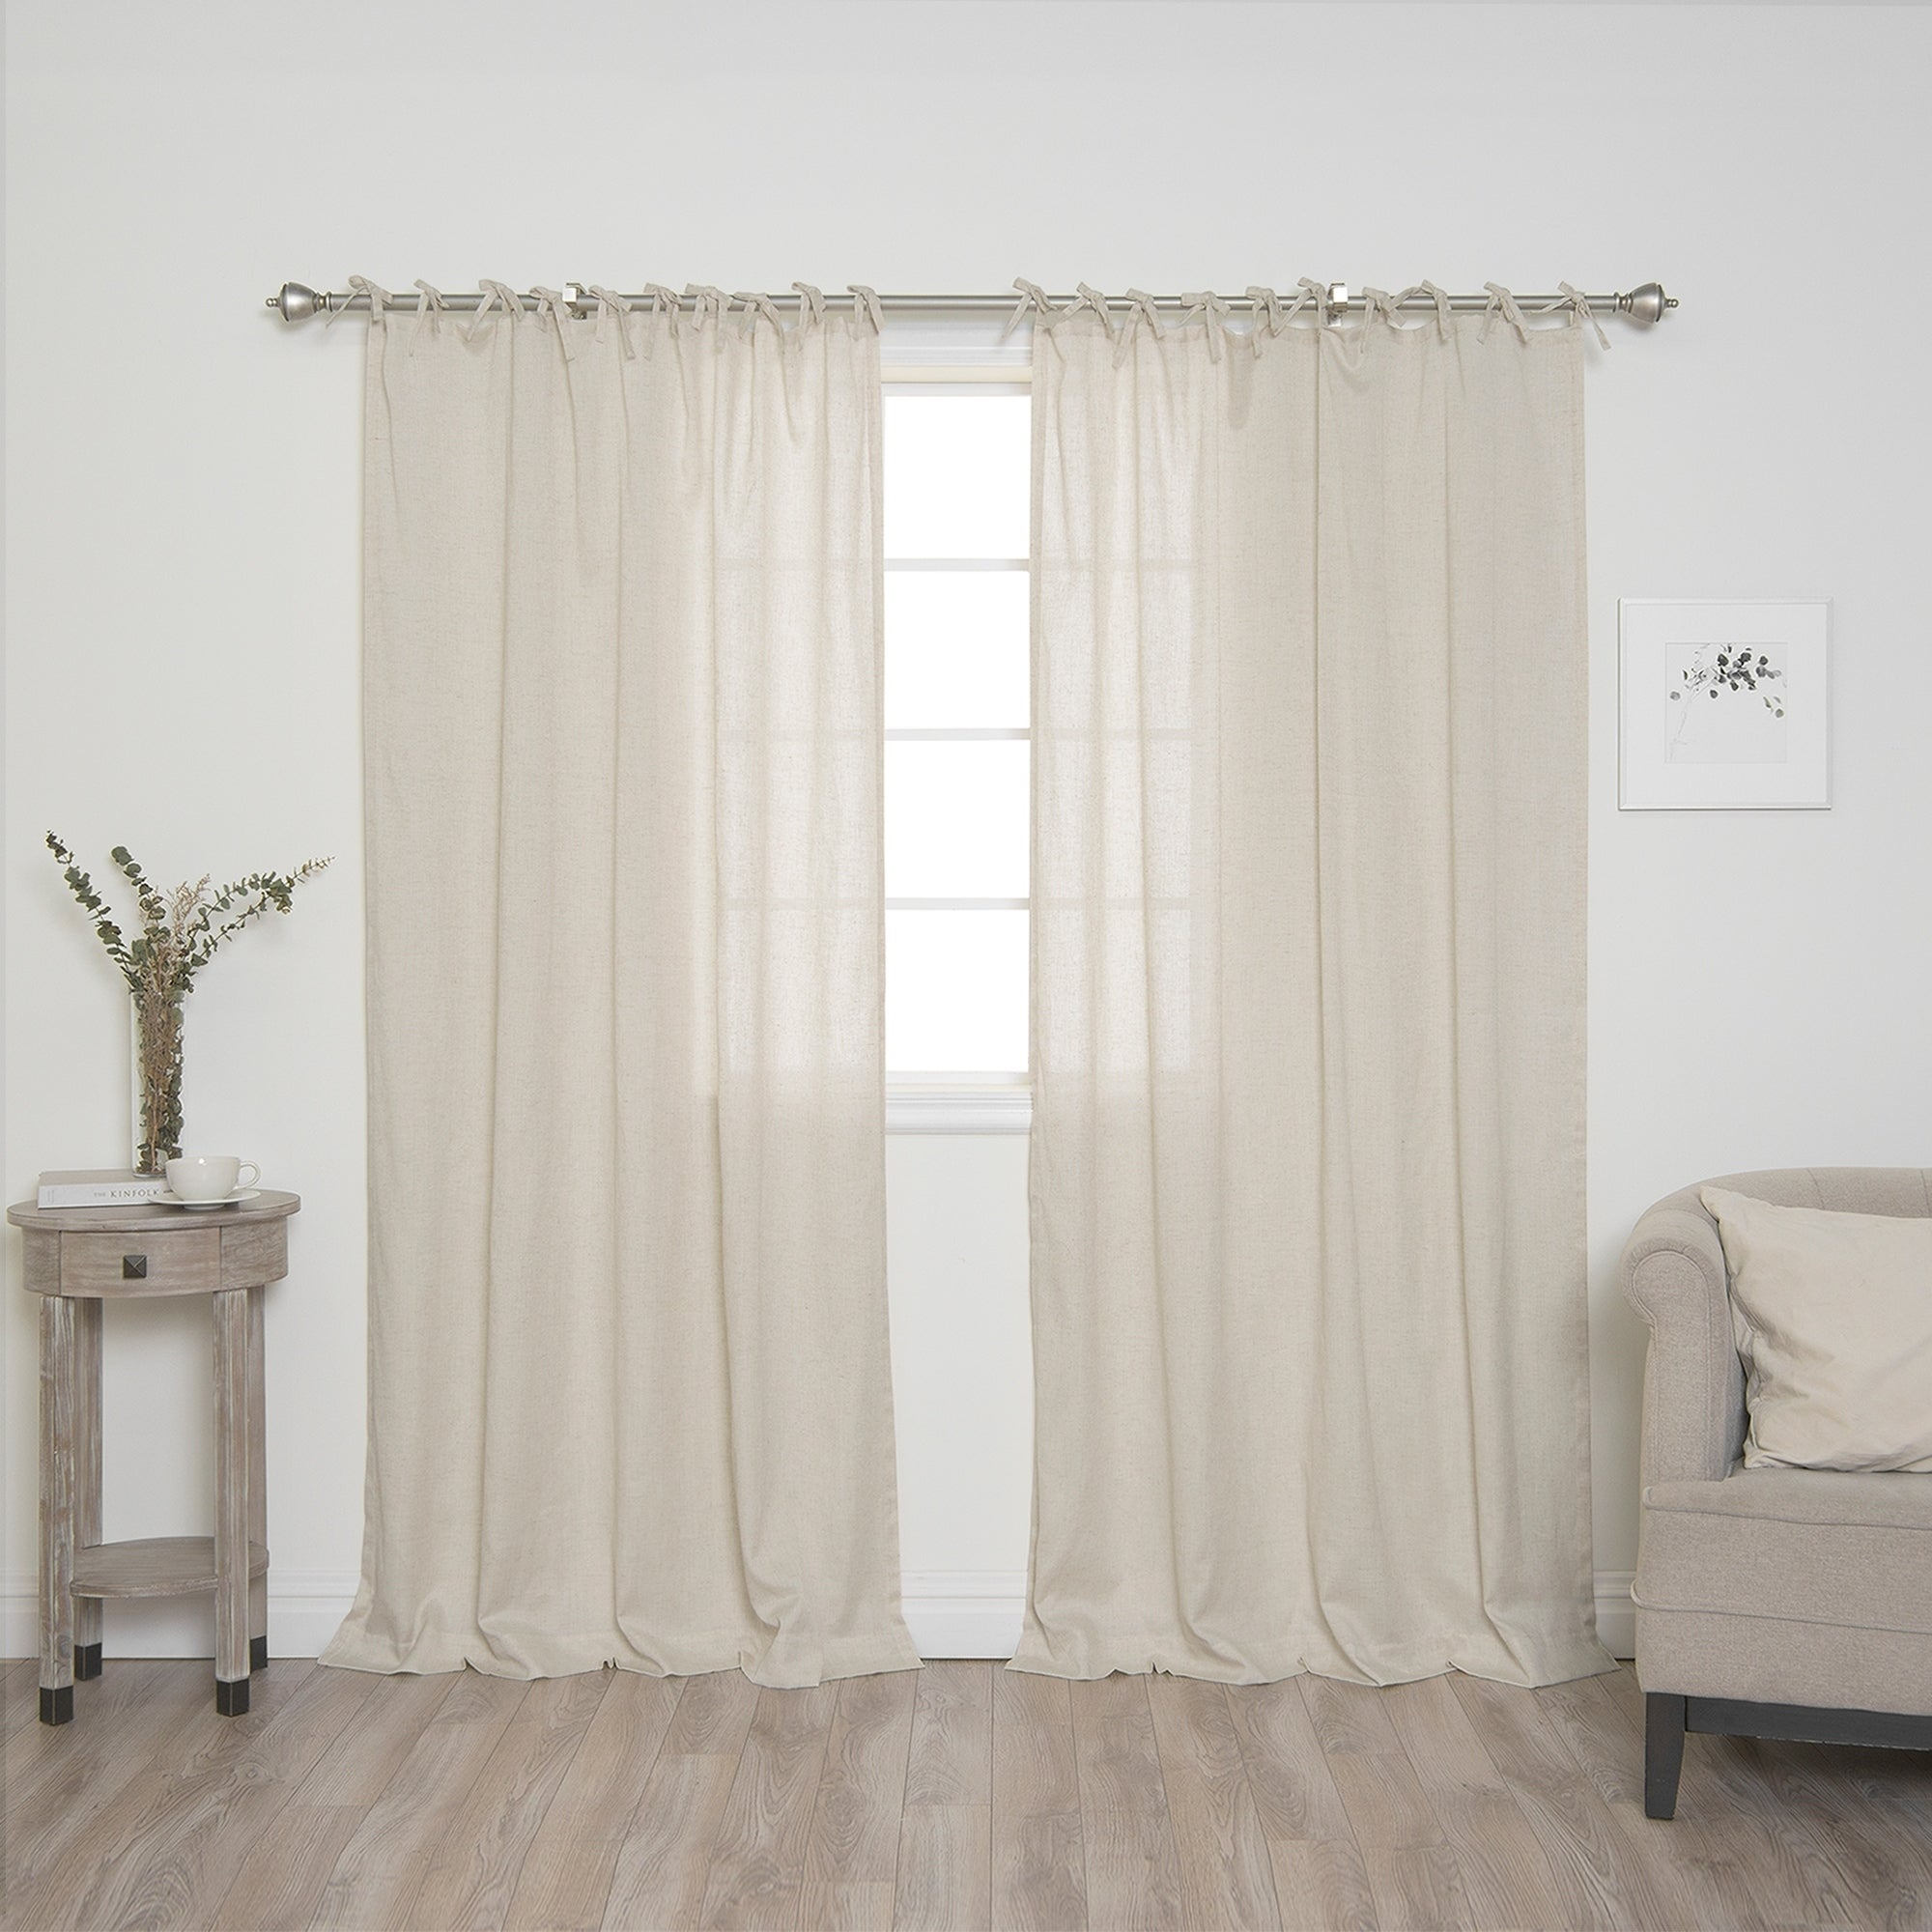 semi window drapes curtains rust grommet extra x w botanica p in panel linen elements sheer wide faux l curtain